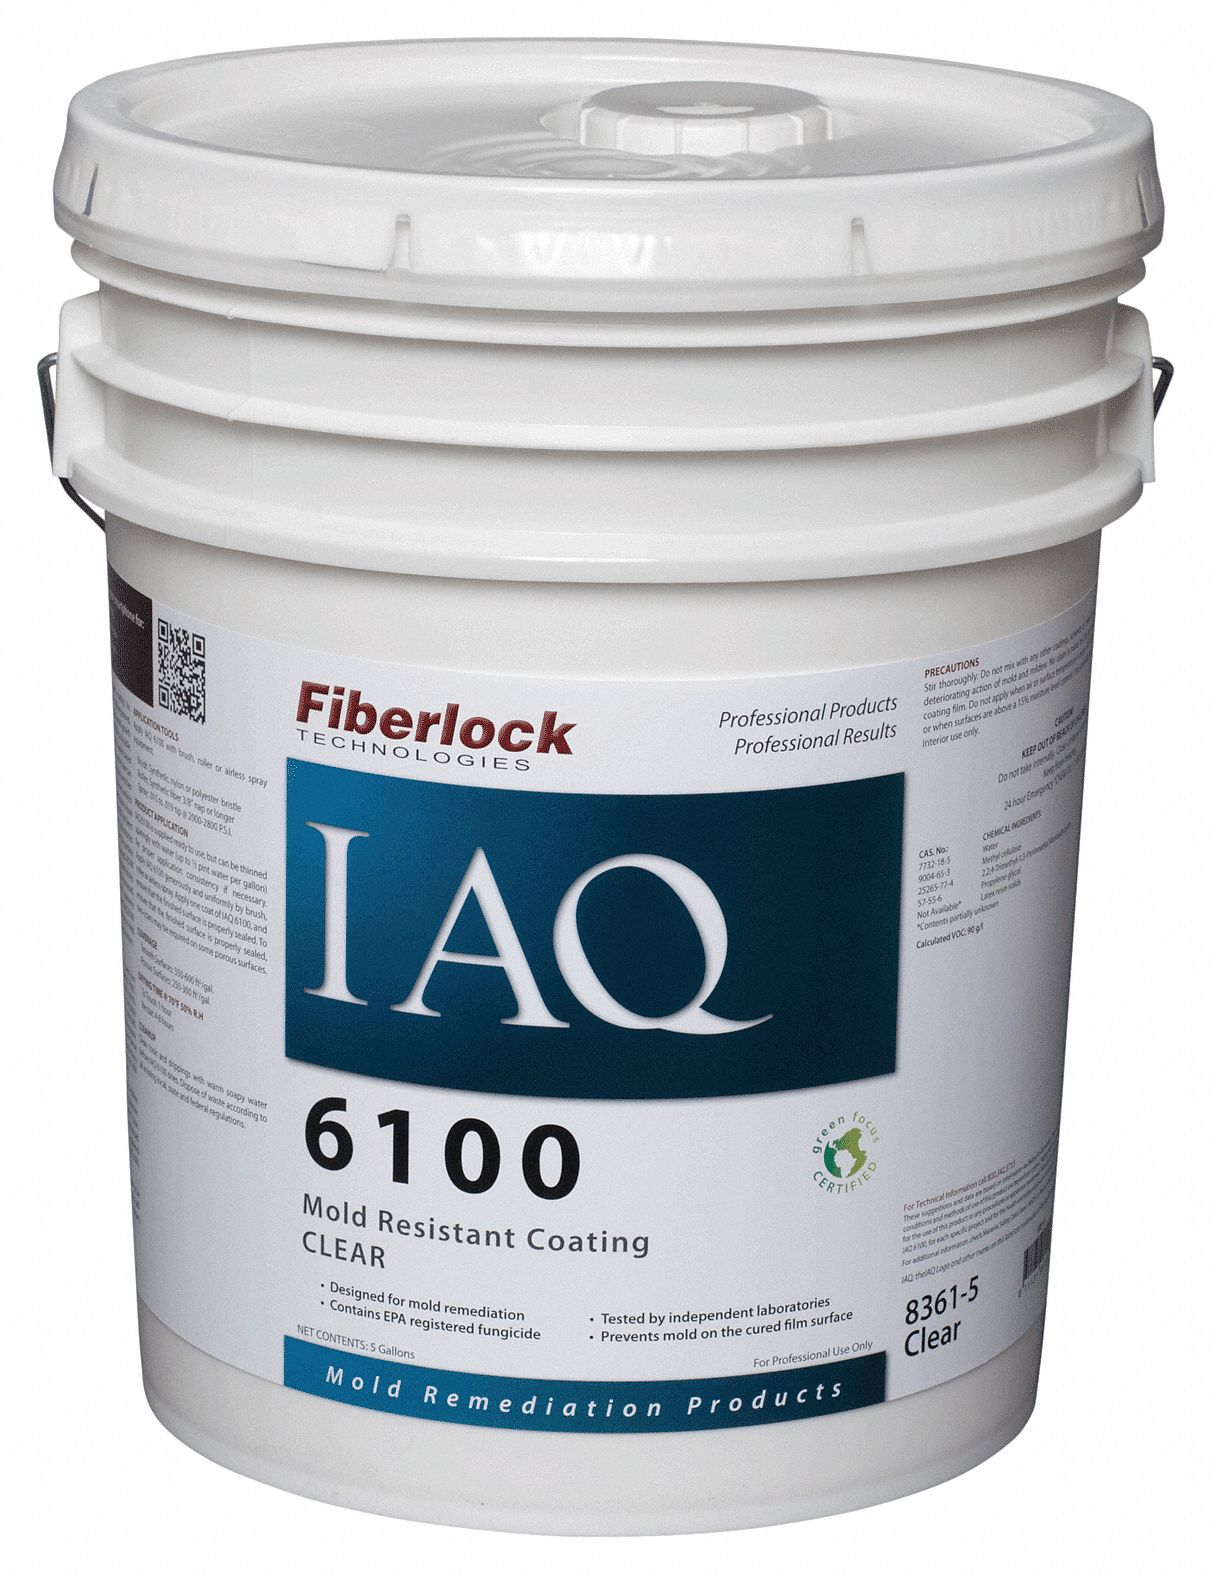 Clear Mold-Resistant Coating, Size: 5 gal